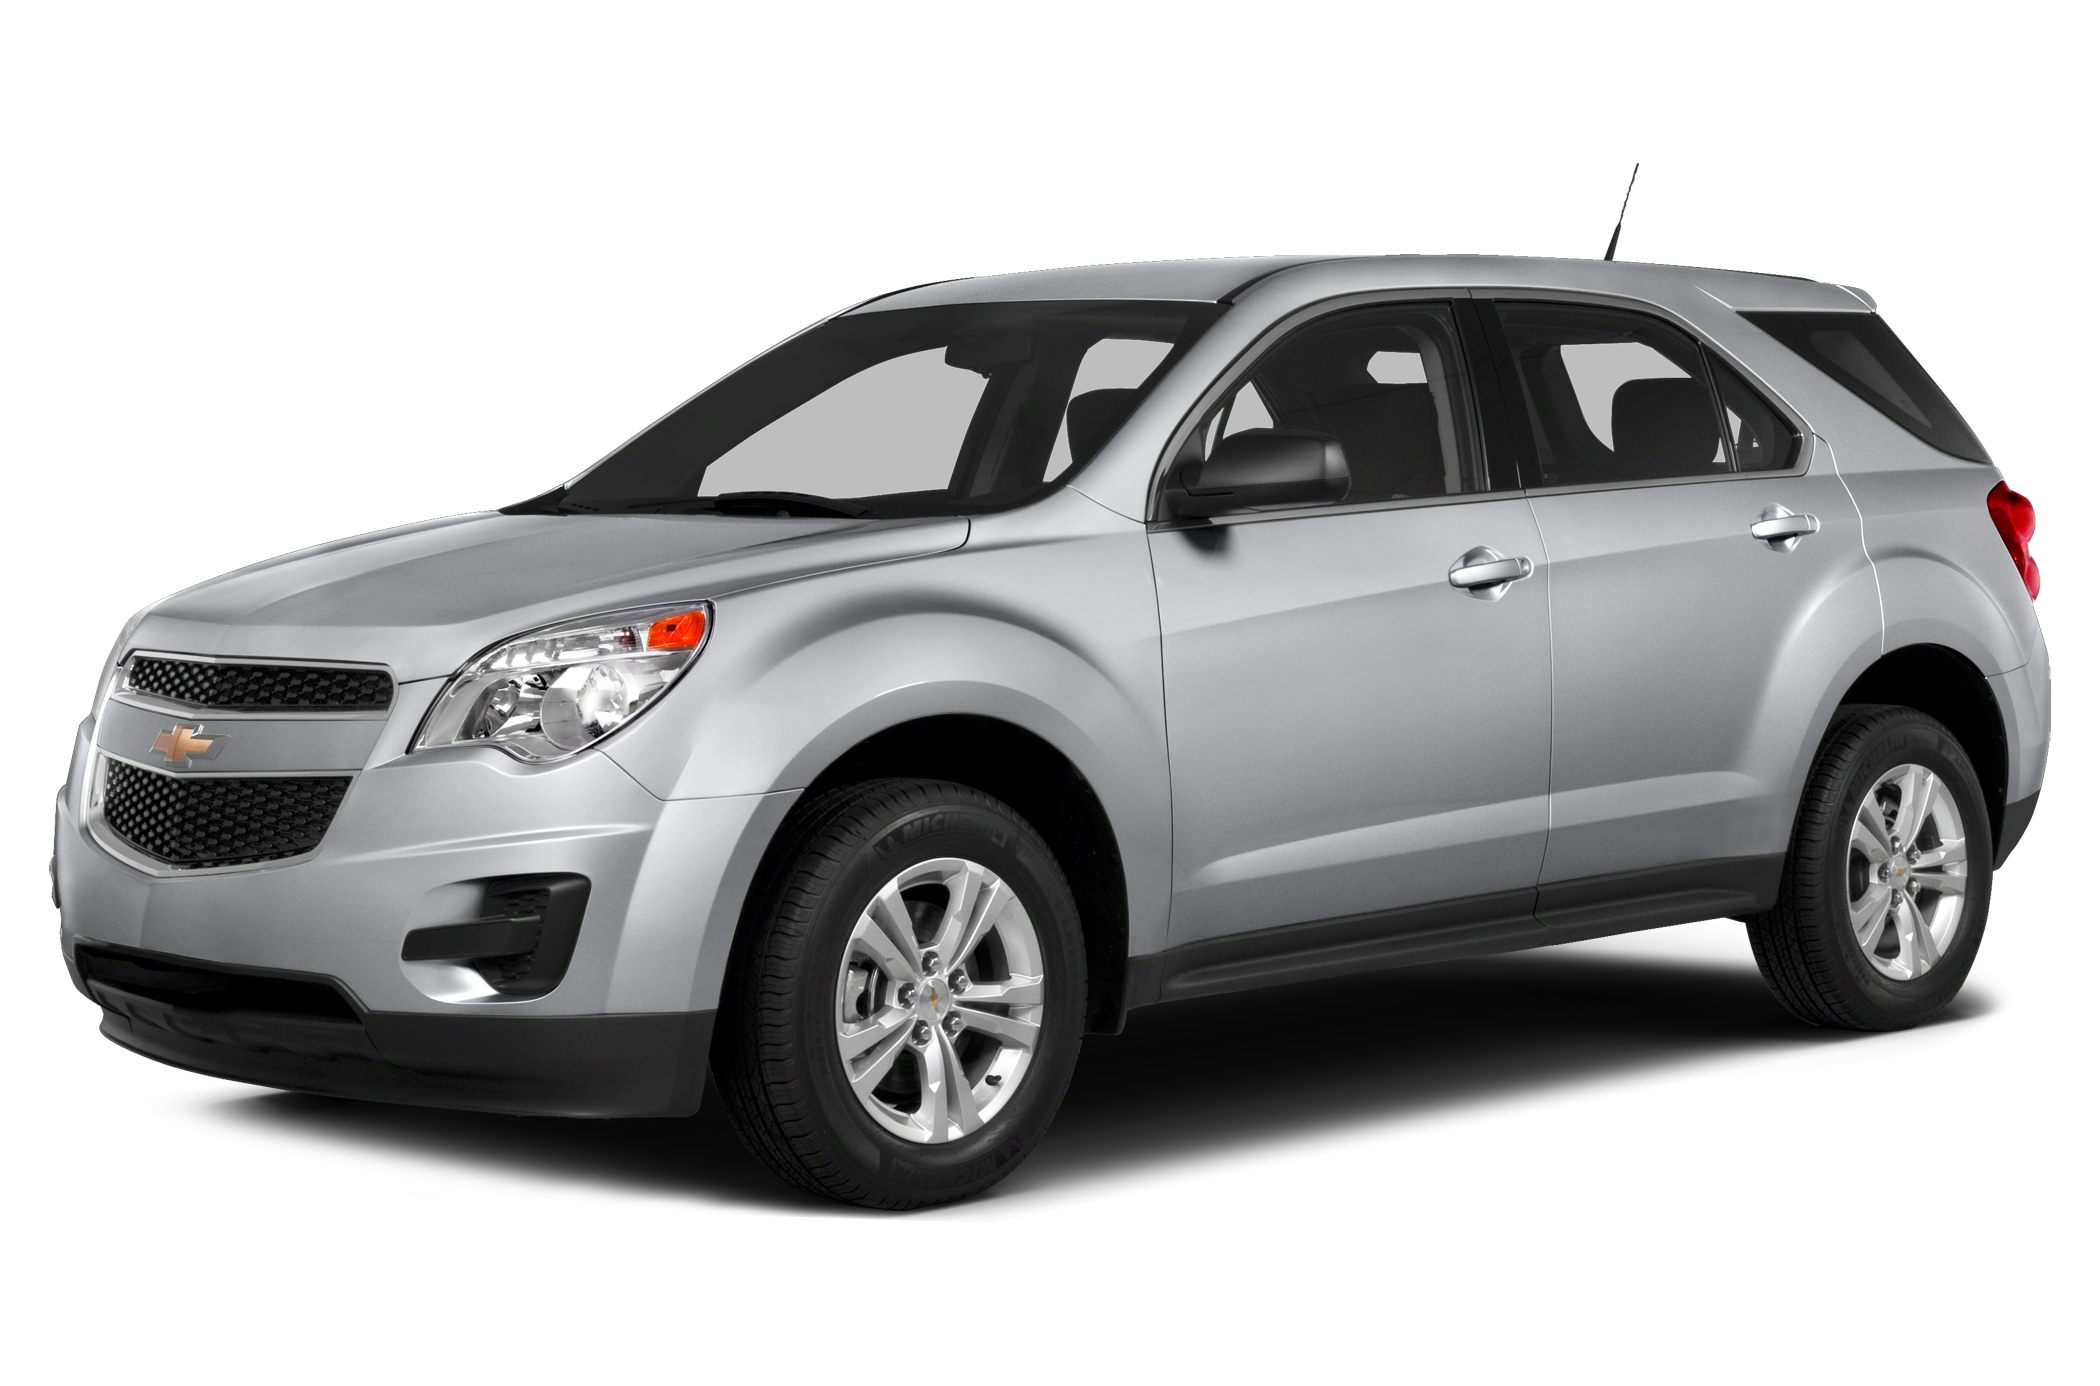 2015 Chevrolet Equinox LS SUV for sale in Lawrence for $25,830 with 0 miles